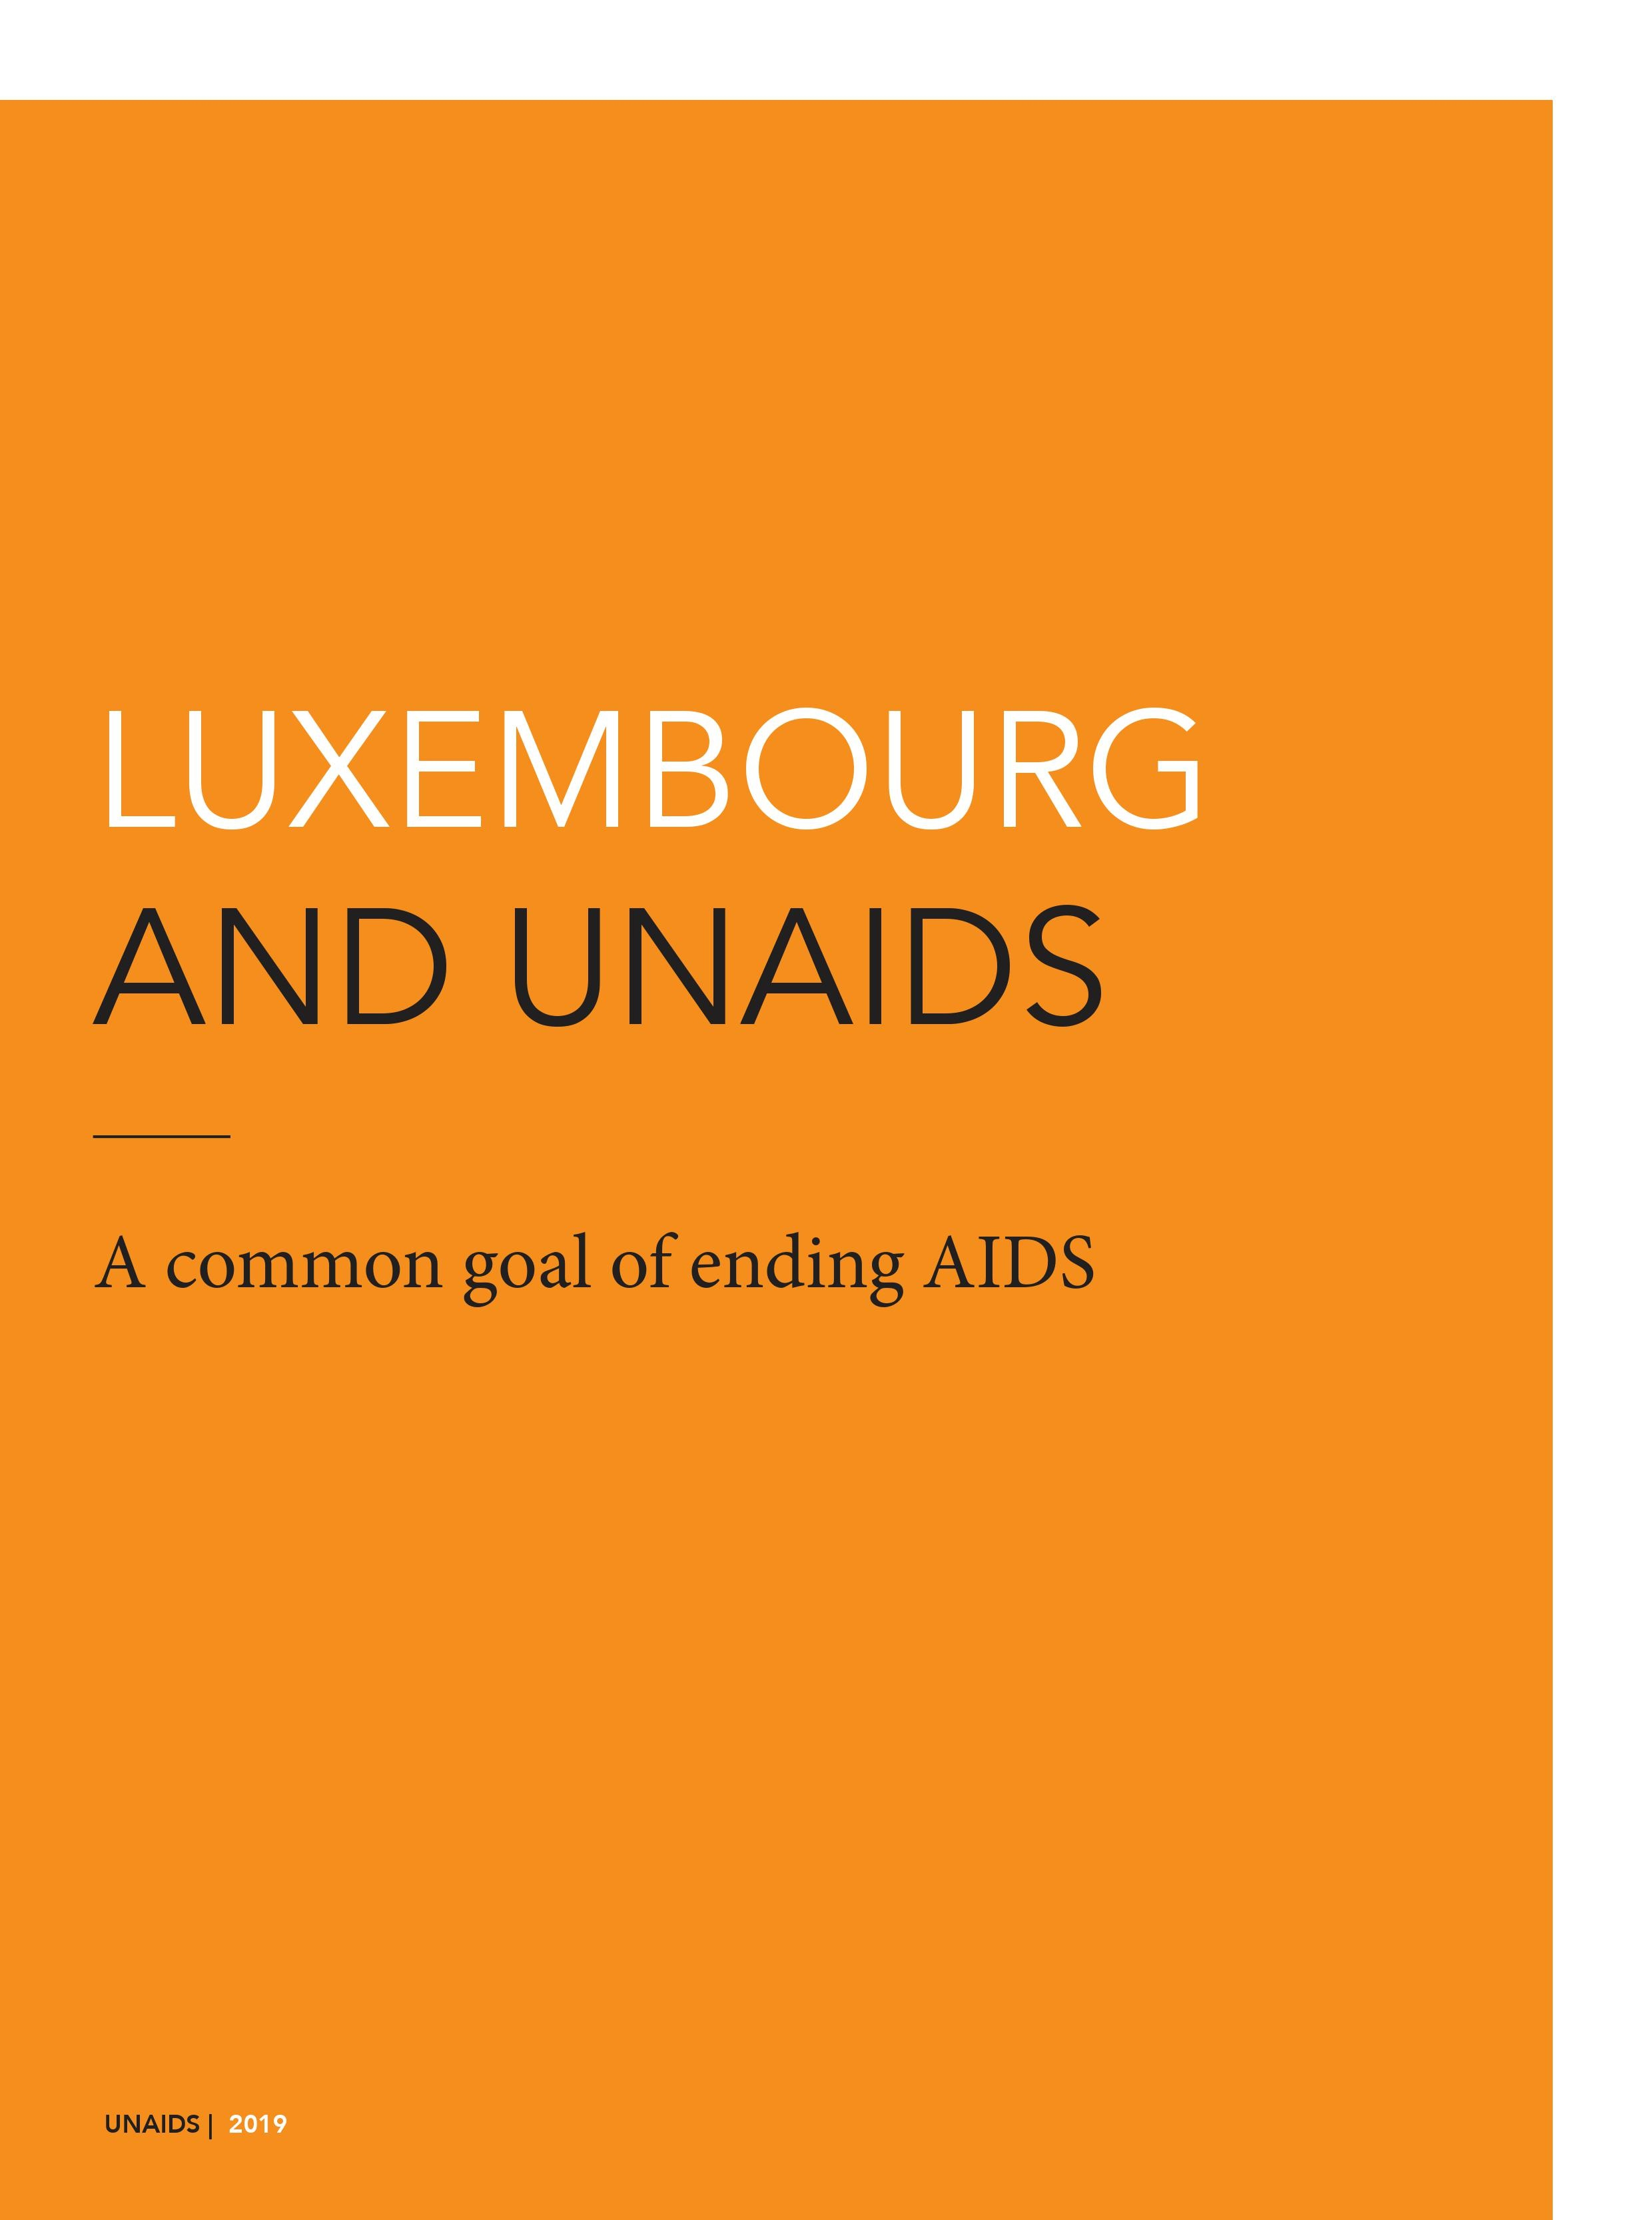 Luxembourg and UNAIDS